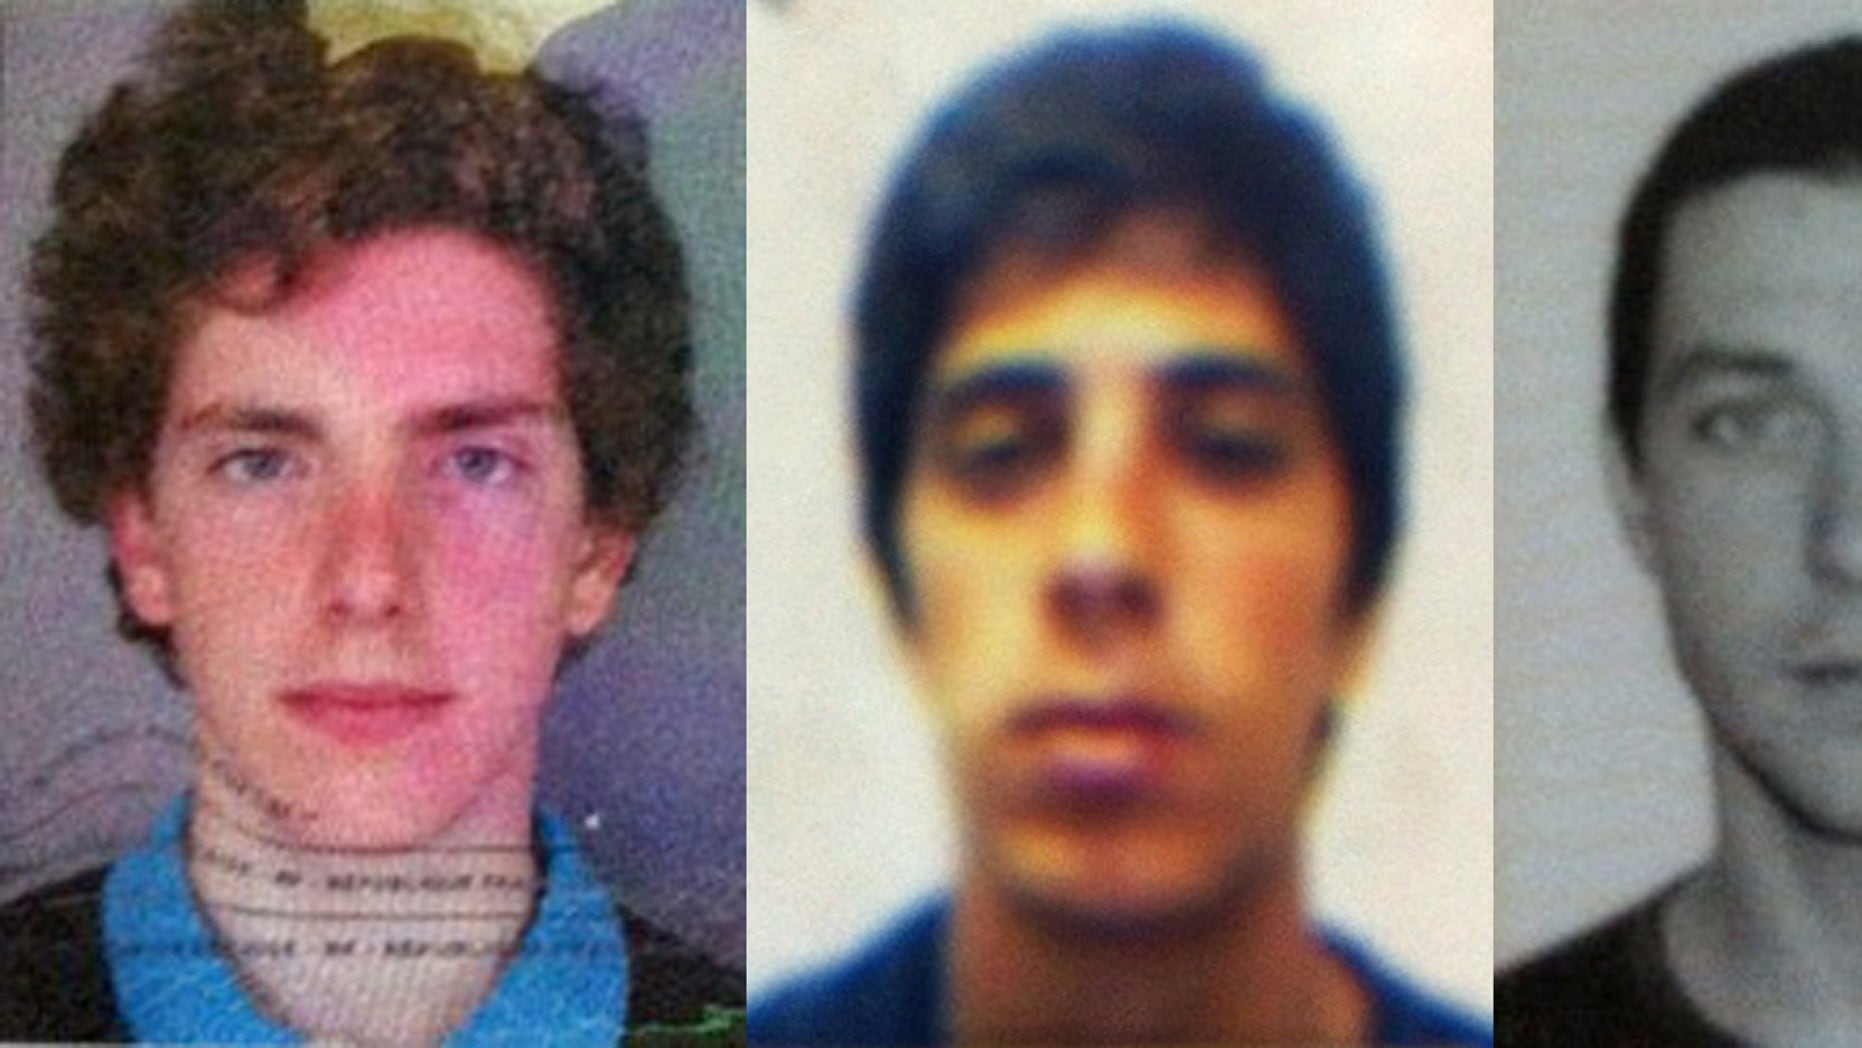 This combination of passport photos provided by Chile's ONEMI or regional emergency office, shows from left to right, Gillhem Bellon, 25, of France; Luca Ogliengo, 25, of Italy; and Dmitry Sivenkov, 32, of Russia, three European tourists hiking around the Villarica volcano in Chile's central valley, who haven't been heard from since Wednesday evening, Nov. 7, 2012 .